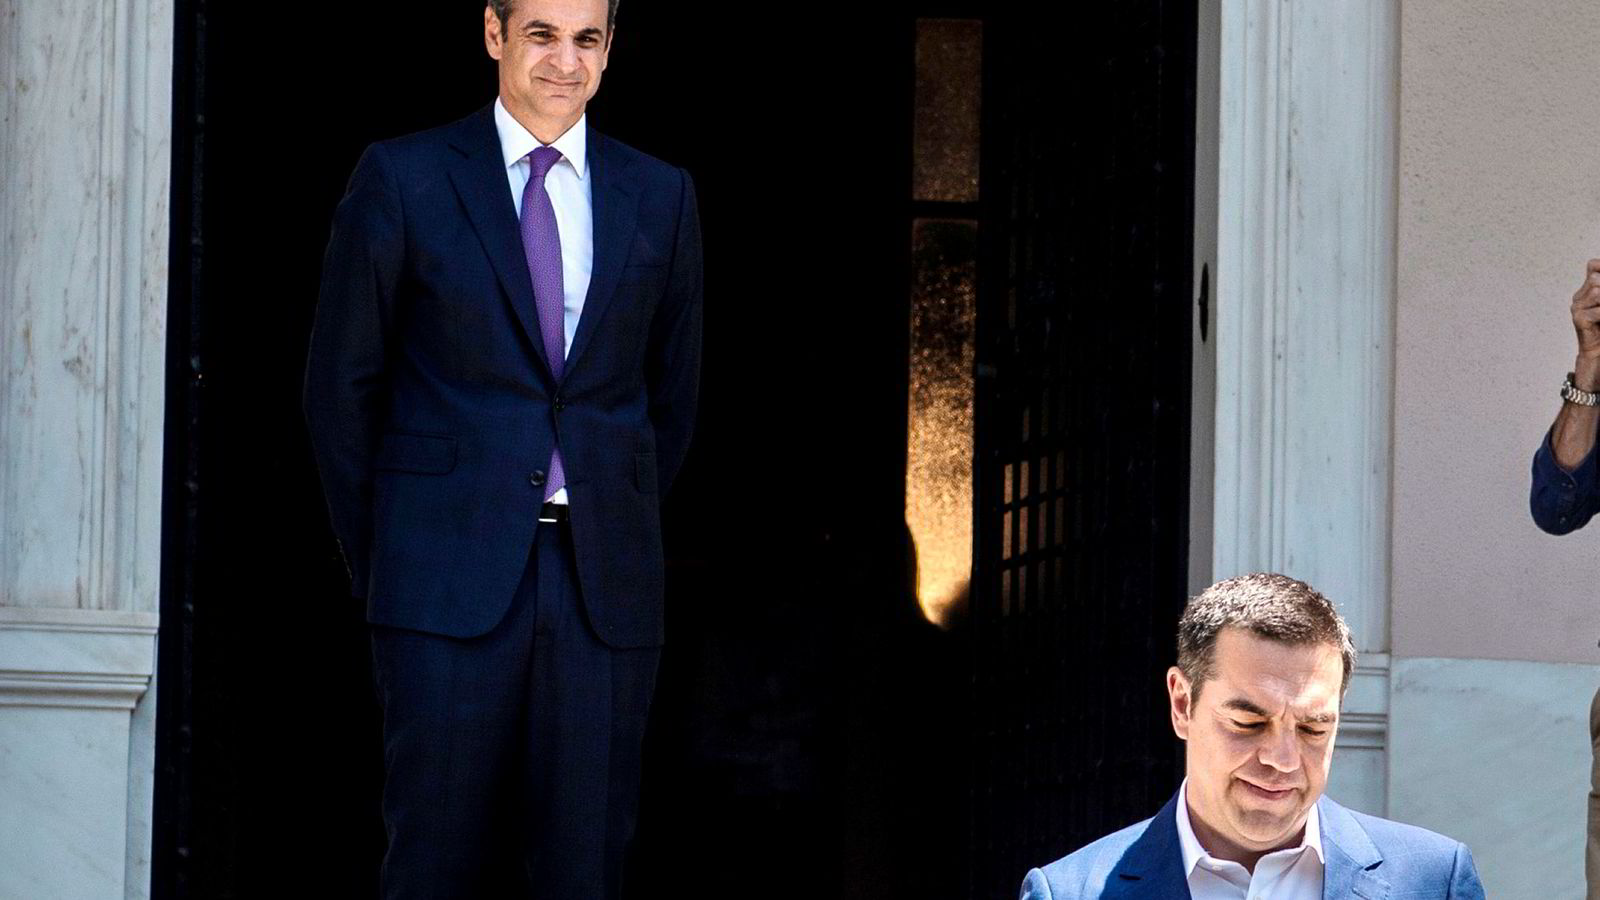 Greece's new conservative Prime Minister Kyriakos Mitsotakis (L) watches his predecessor Alexis Tsipras leaving the Maximos Mansion after their meeting, after being sworn-in on July 8, 2019 following a sweeping election victory put him in charge of the EU's most indebted member with promises to end a decade of economic crisis. - The 51-year-old Harvard graduate and former McKinsey consultant took the oath of office in the presidential mansion in the presence of his wife and three children. (Photo by ANGELOS TZORTZINIS / AFP) ---